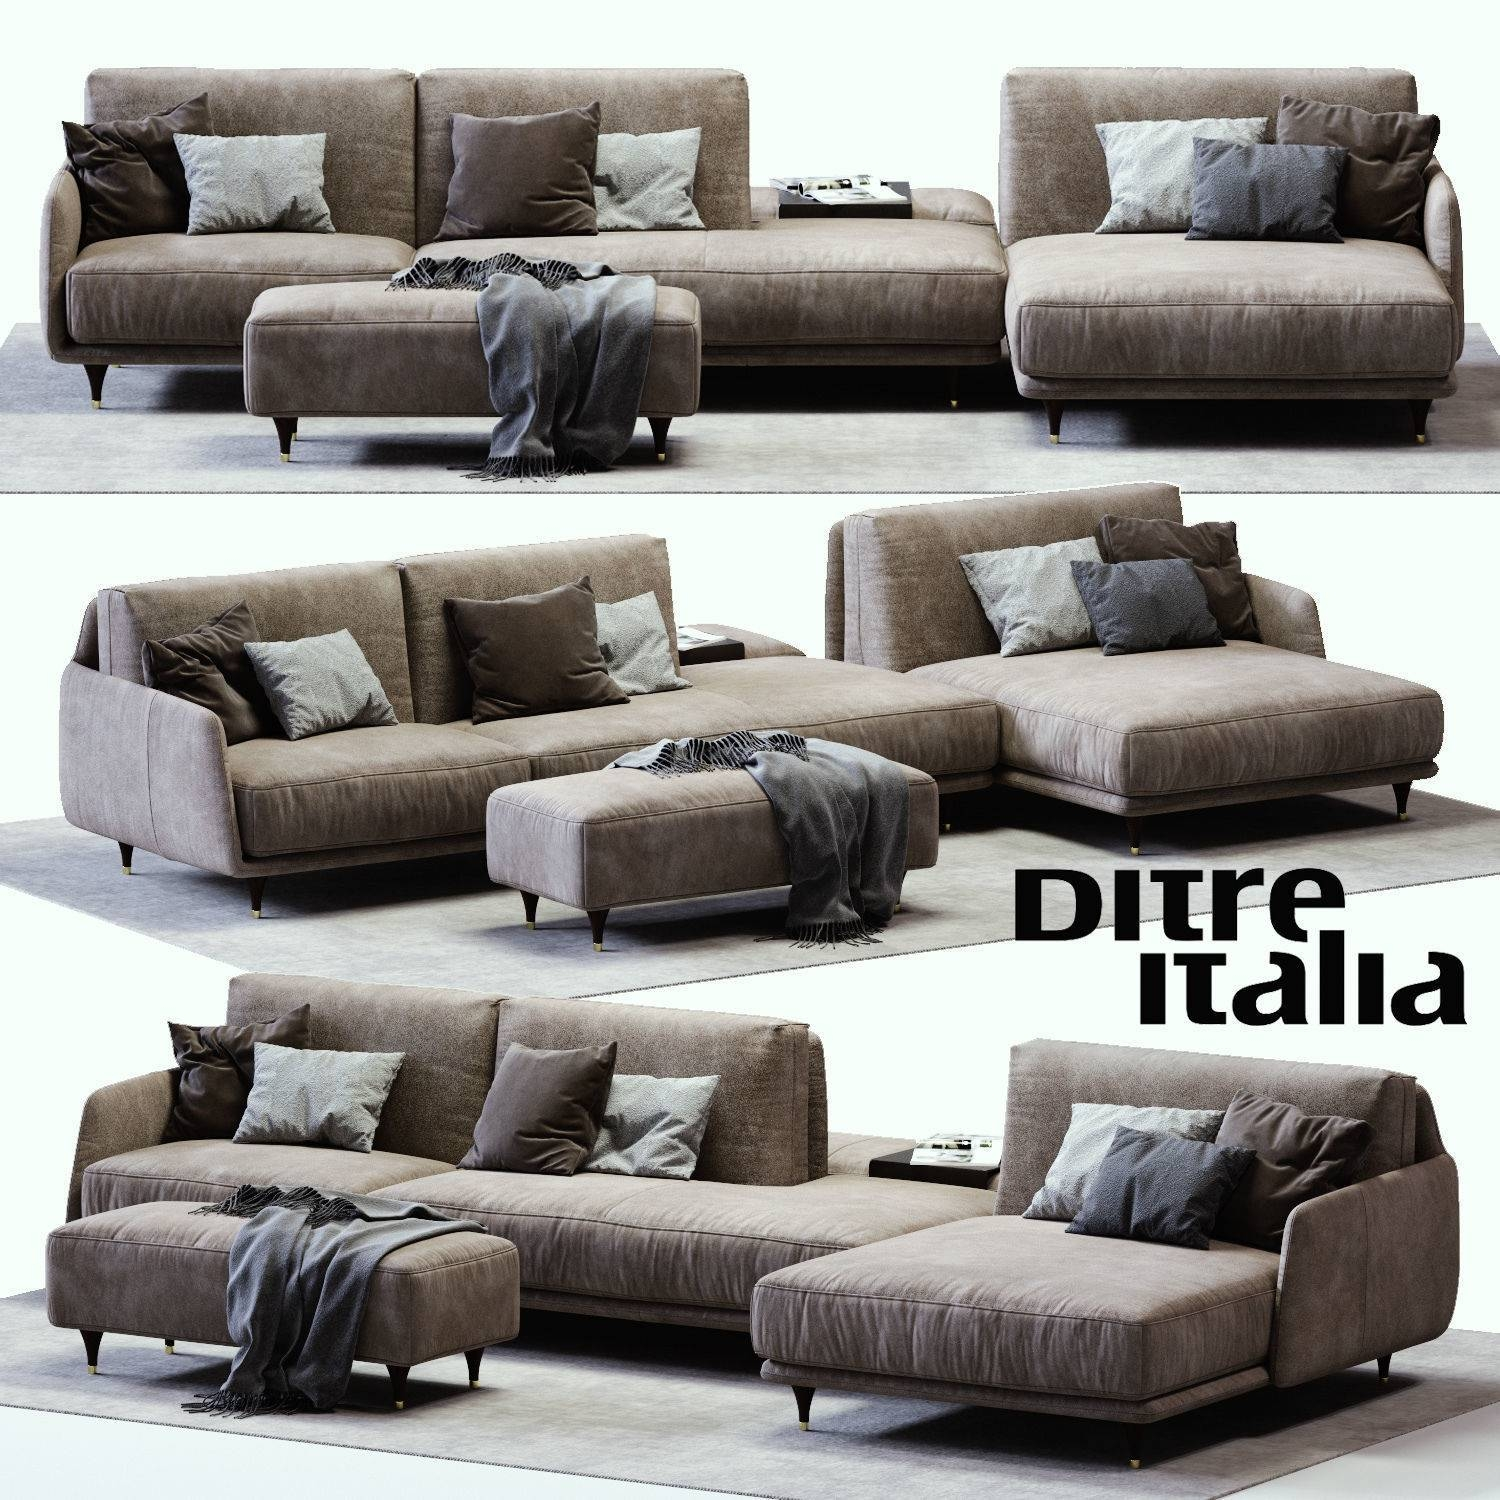 3D Model Ditre Italia Elliot Sofa Vr / Ar / Low-Poly Max Obj Fbx intended for Elliott Sofa (Image 4 of 30)